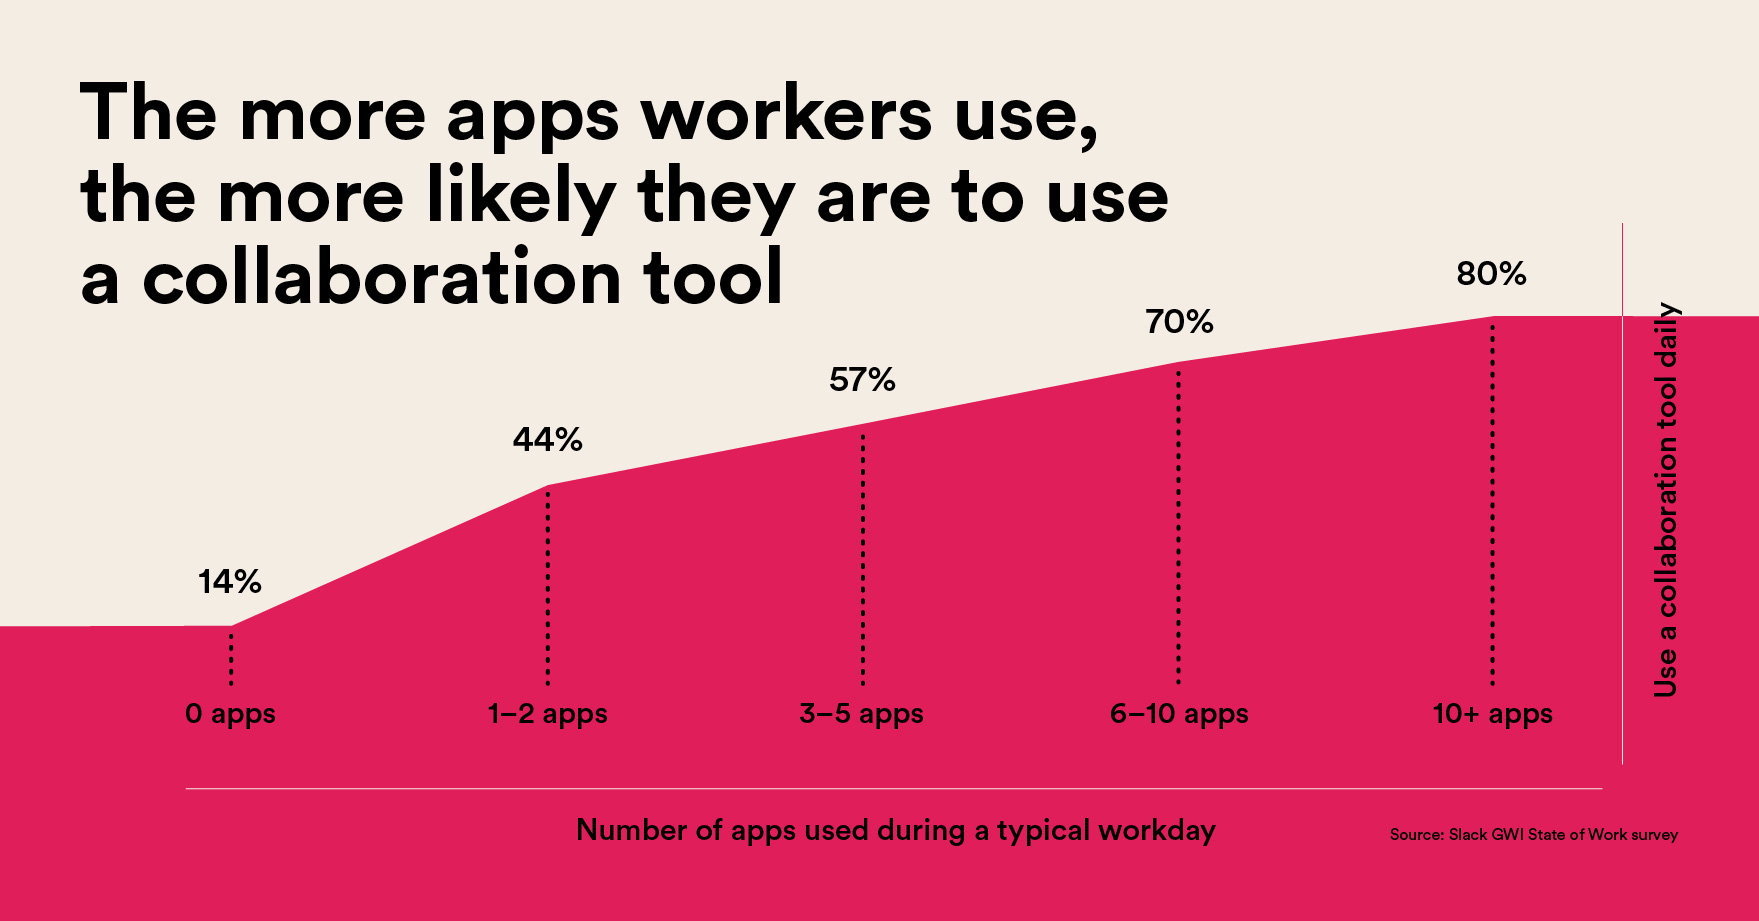 Line graph illustrating that the more apps workers use, the more likely they are to use a collaboration tool.